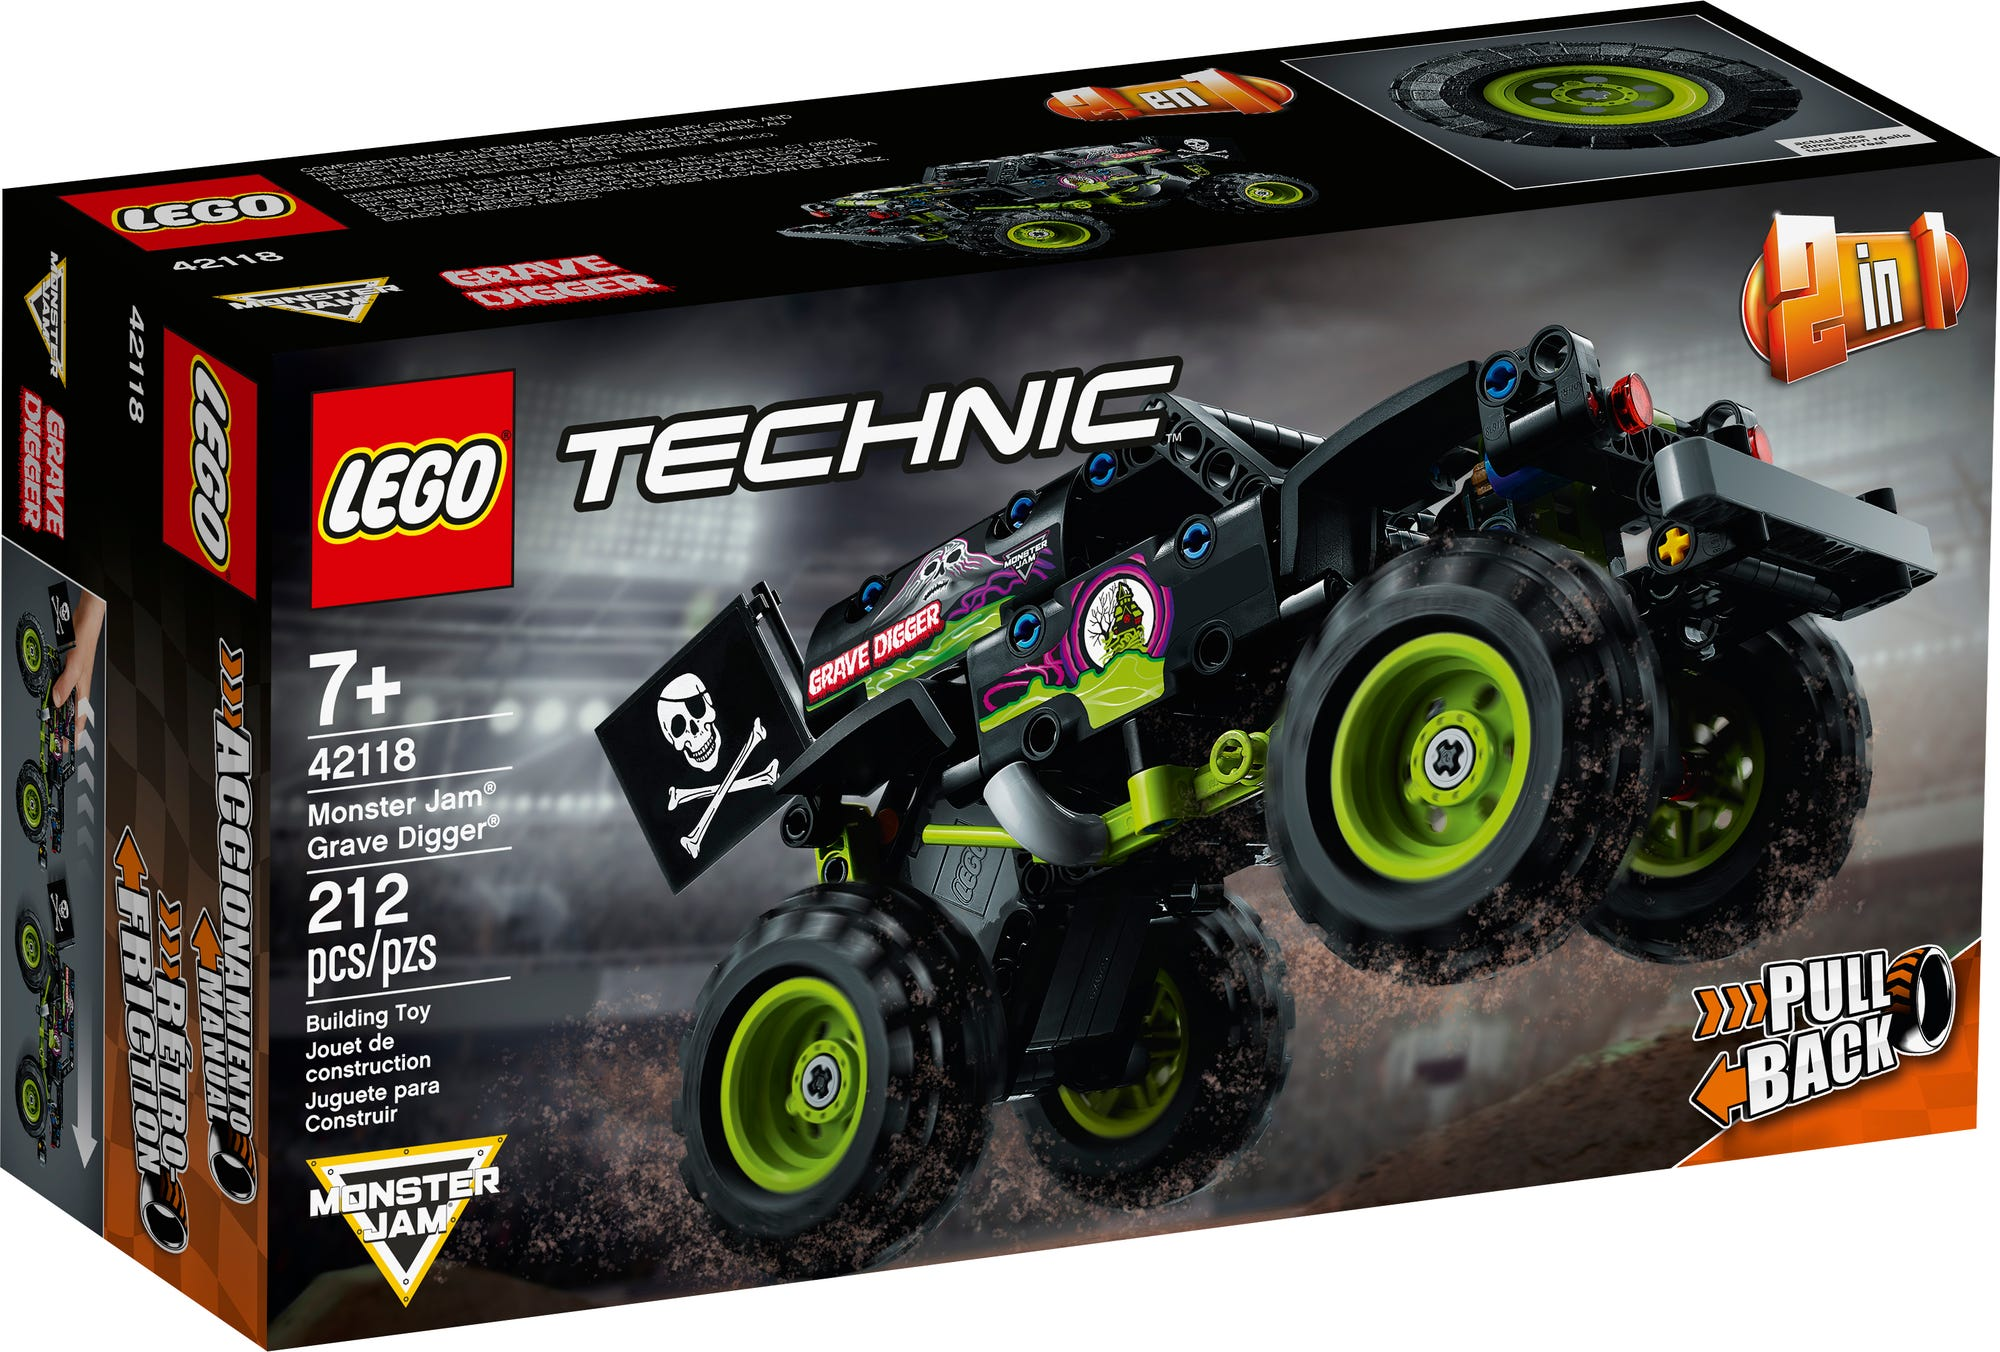 LEGO Technic 42118 Monster Jam Grave Digger (2)